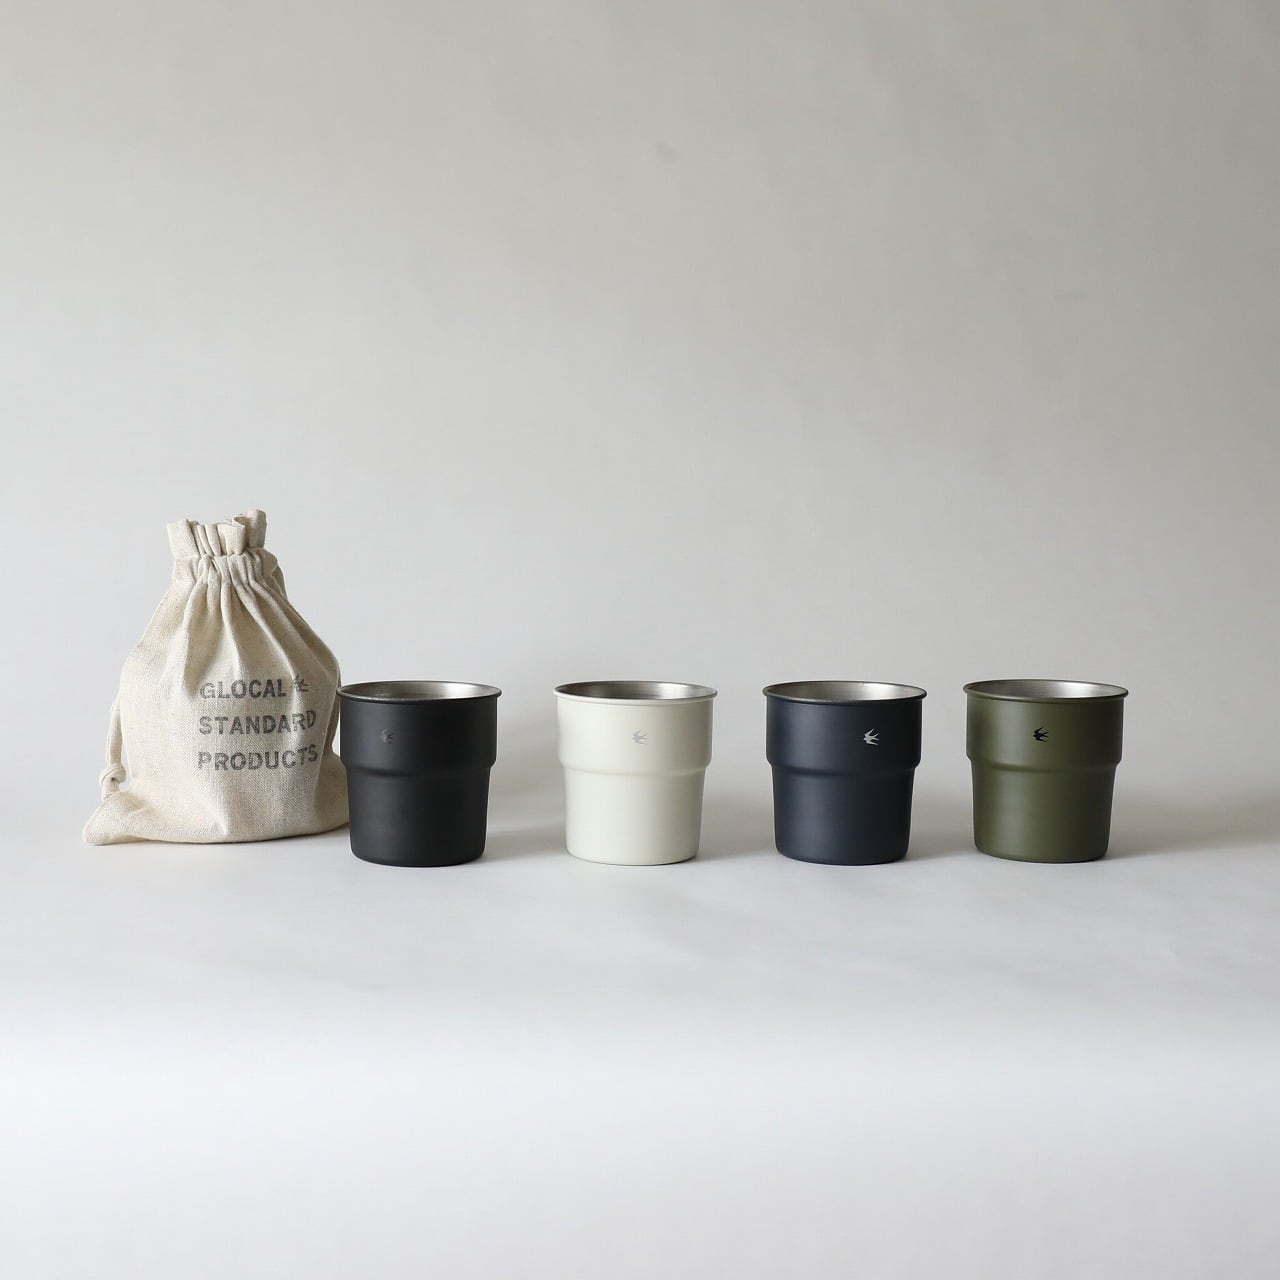 GLOCAL STANDARD PRODUCTS (グローカルスタンダードプロダクツ) TSUBAME (ツバメ) Stacking cup スタッキングカップ colors